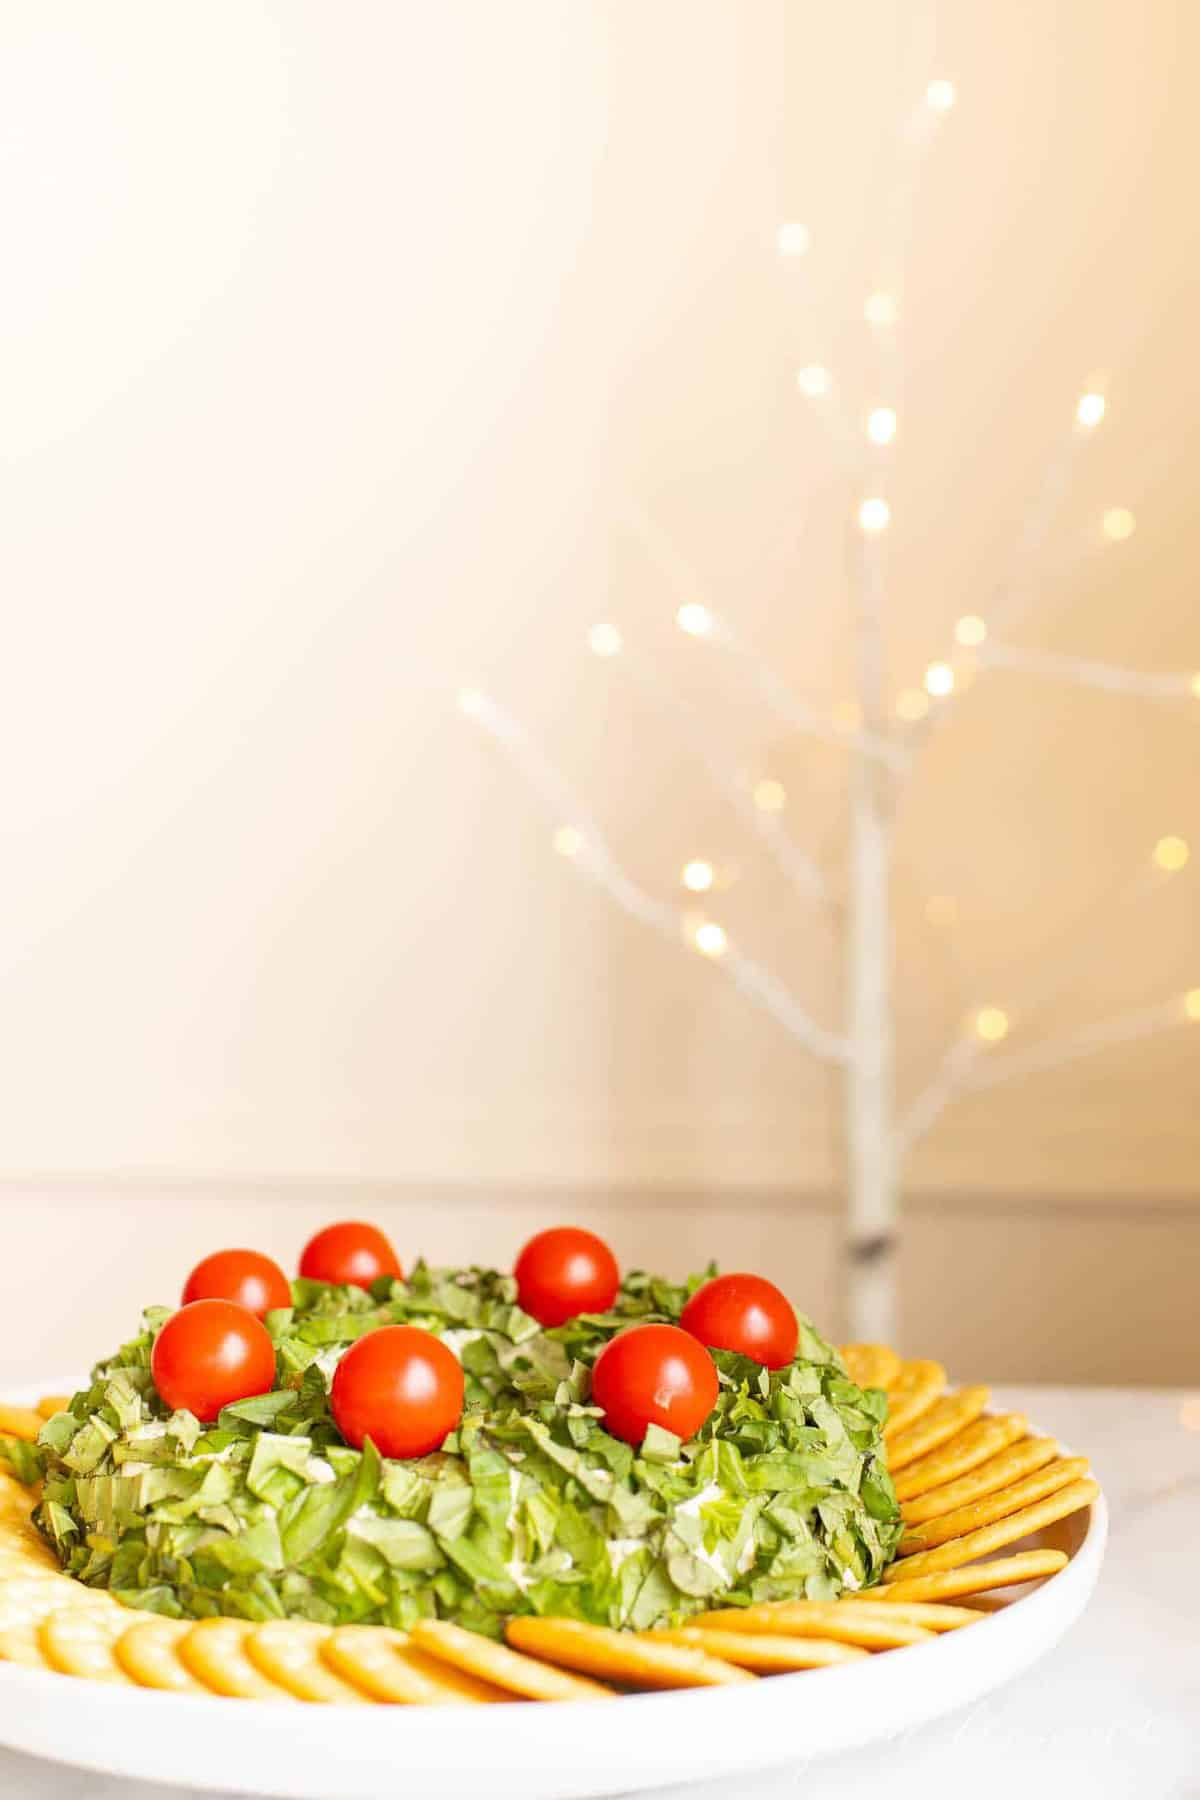 A pesto cheeseball Christmas wreath appetizer surrounded by crackers on a platter. Sparkling tree in the background.